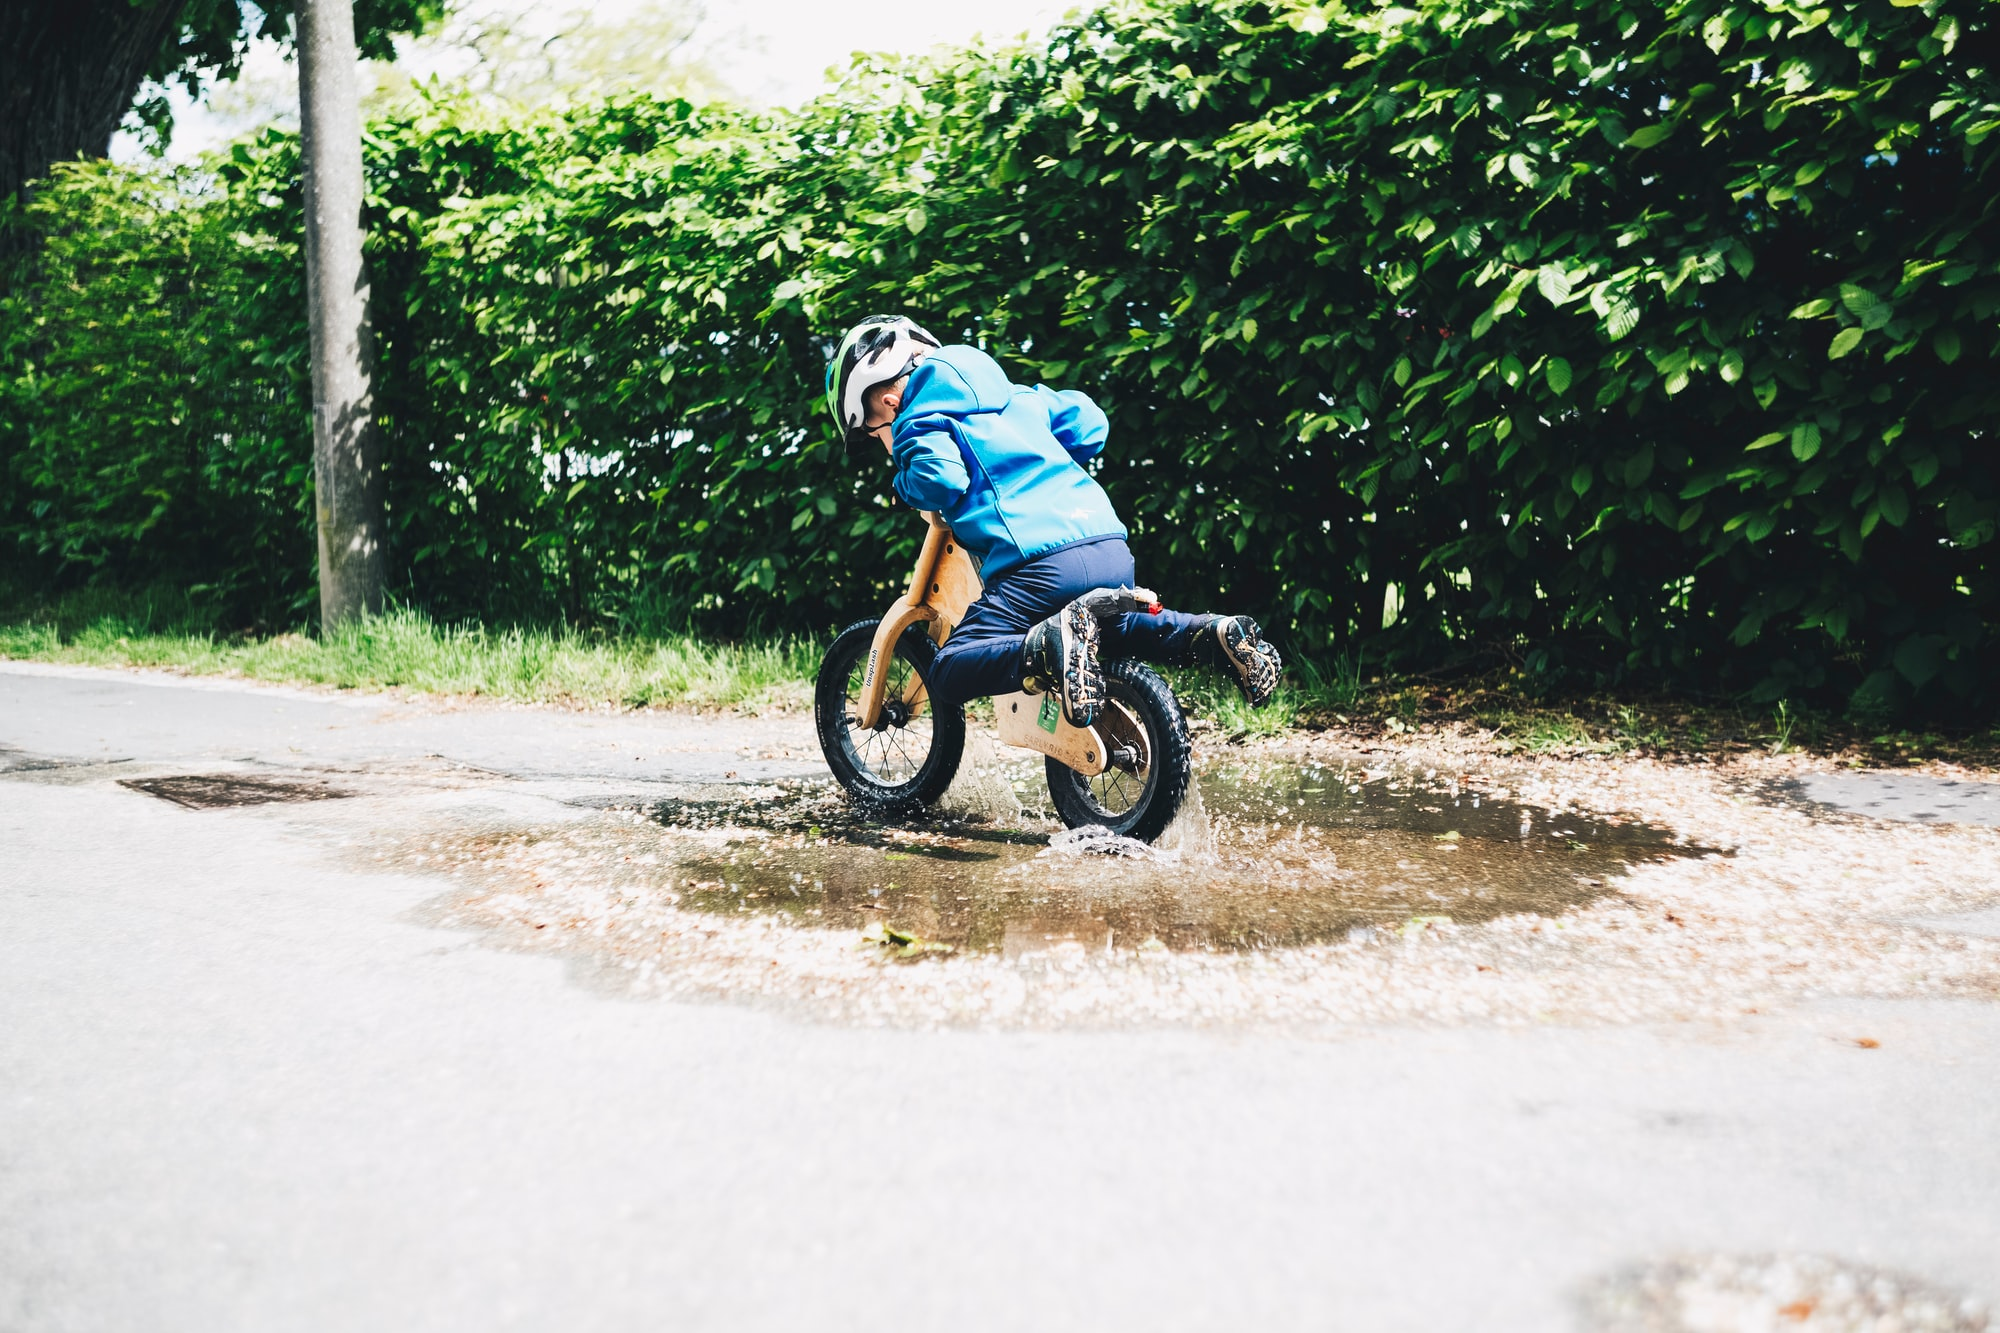 Top 5 family cycling activities for the half-term